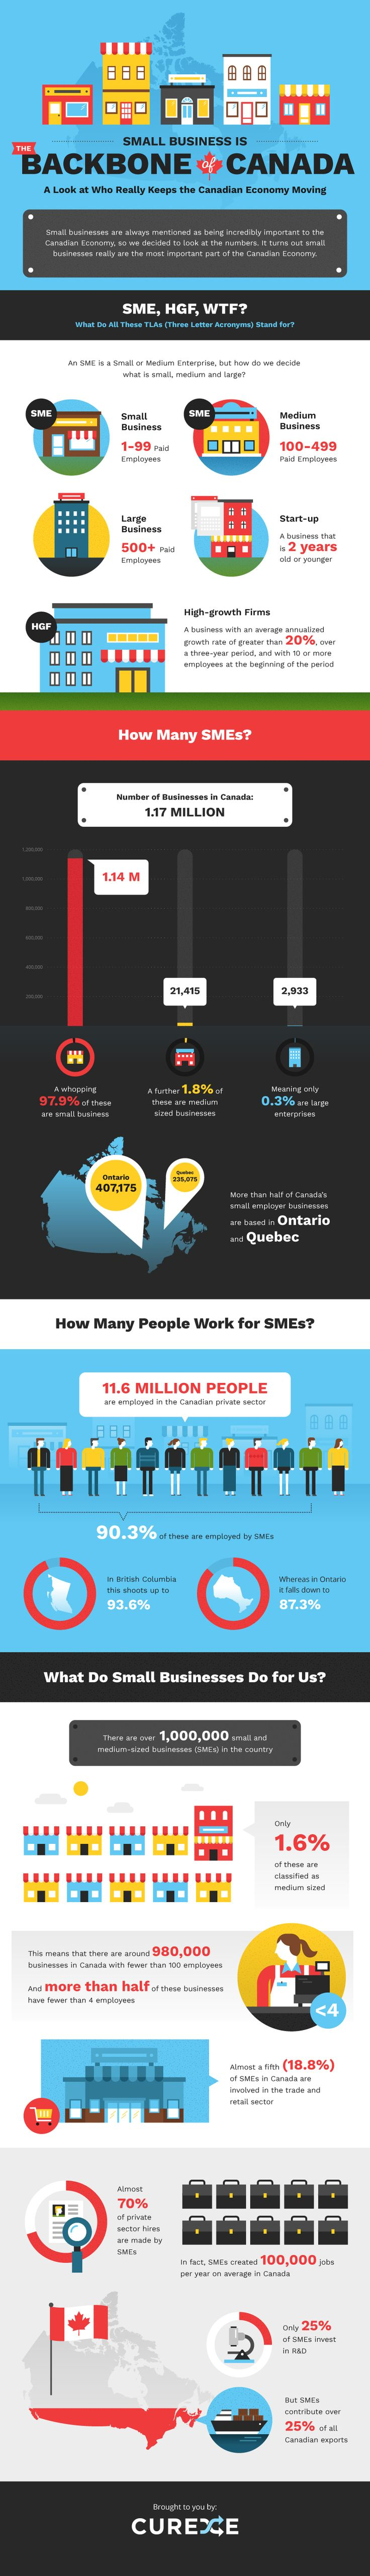 Small Business Is The Backbone of Canada